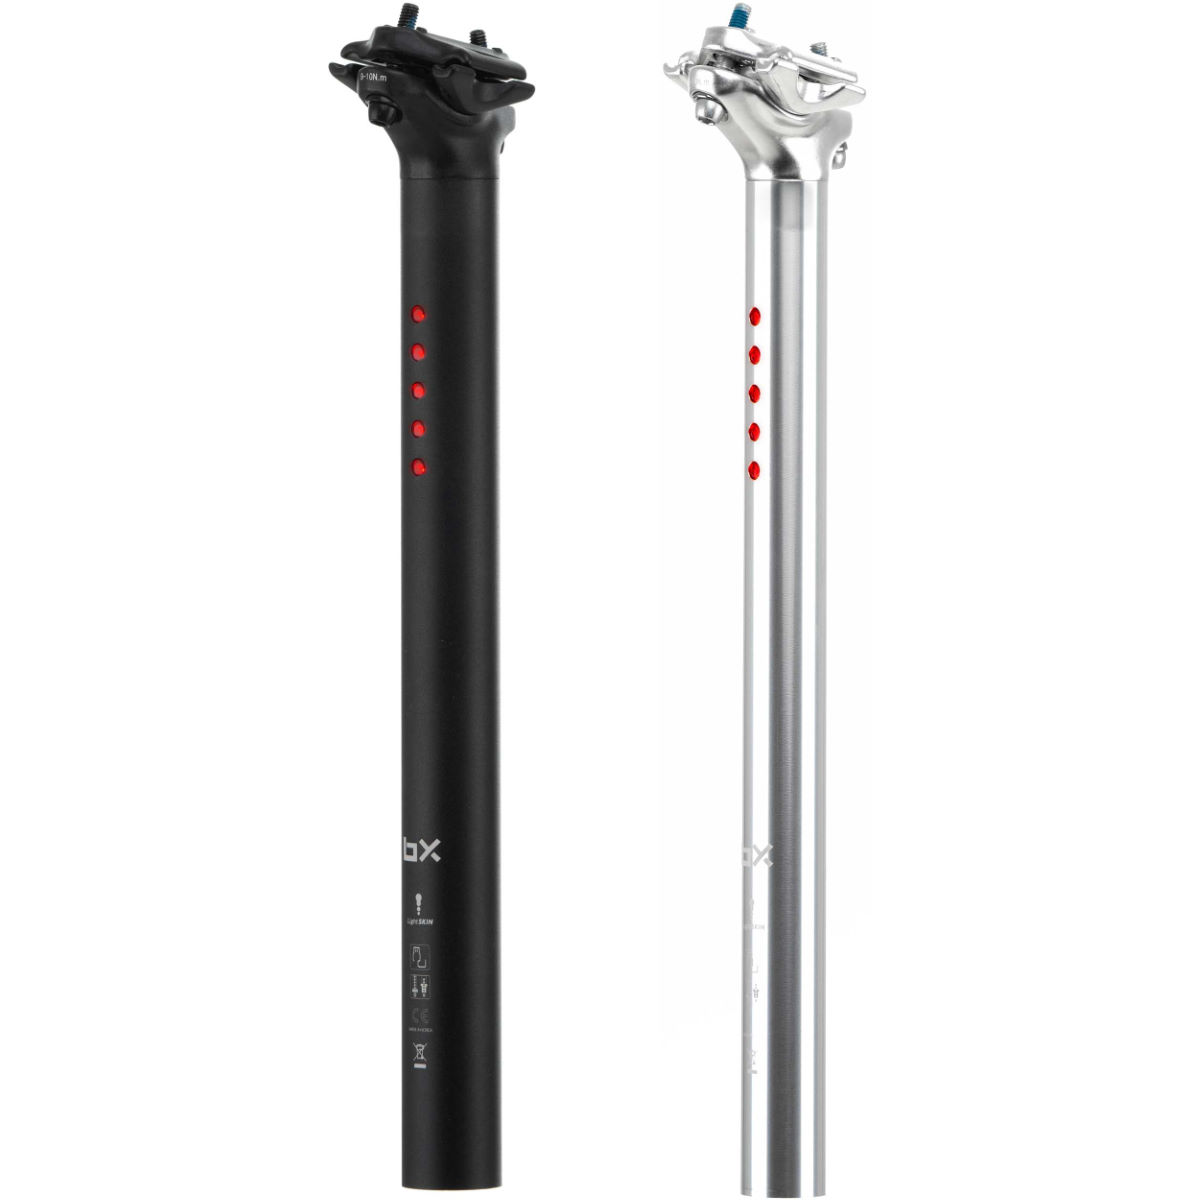 Brand-X Brand-X LightSKIN Seatpost Light USB Charge   Rear Lights